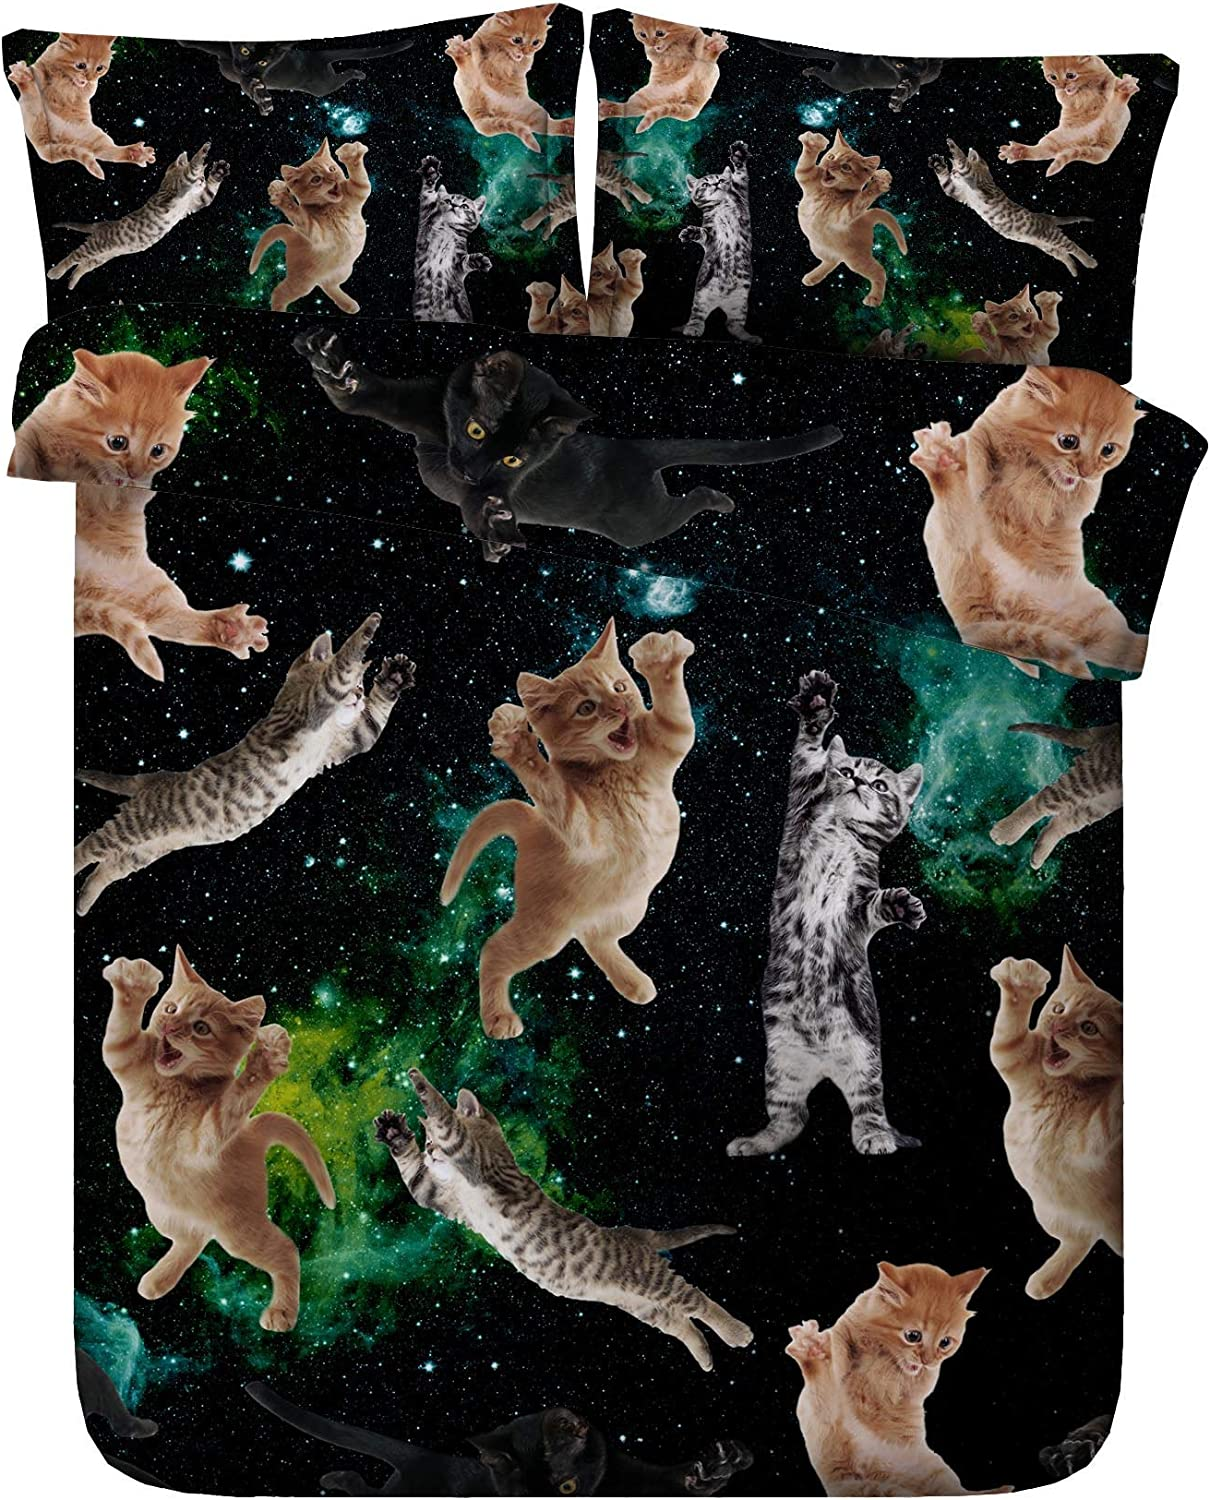 Royal Linen Source Free Shipping New Drop Max 56% OFF 3PCS Kittens Cute Funn in Space